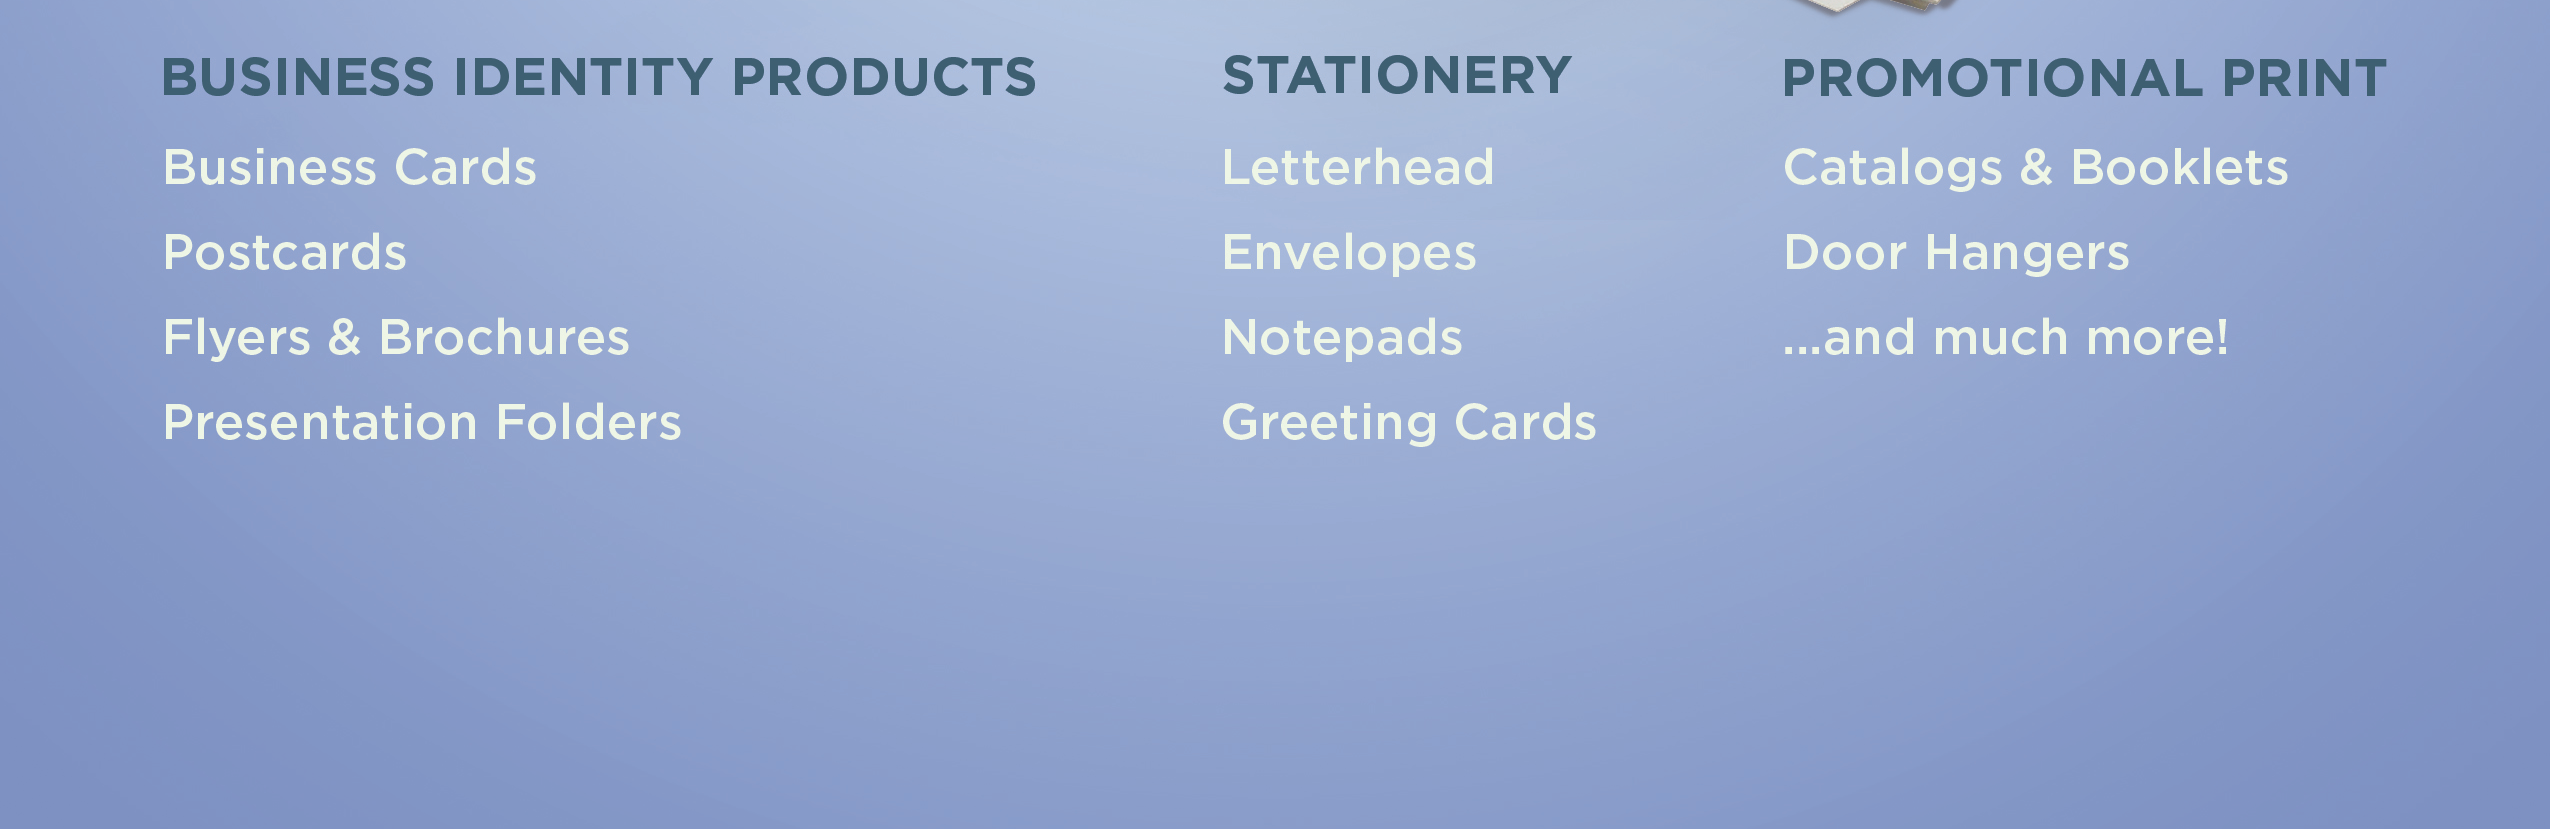 Business Identity Products